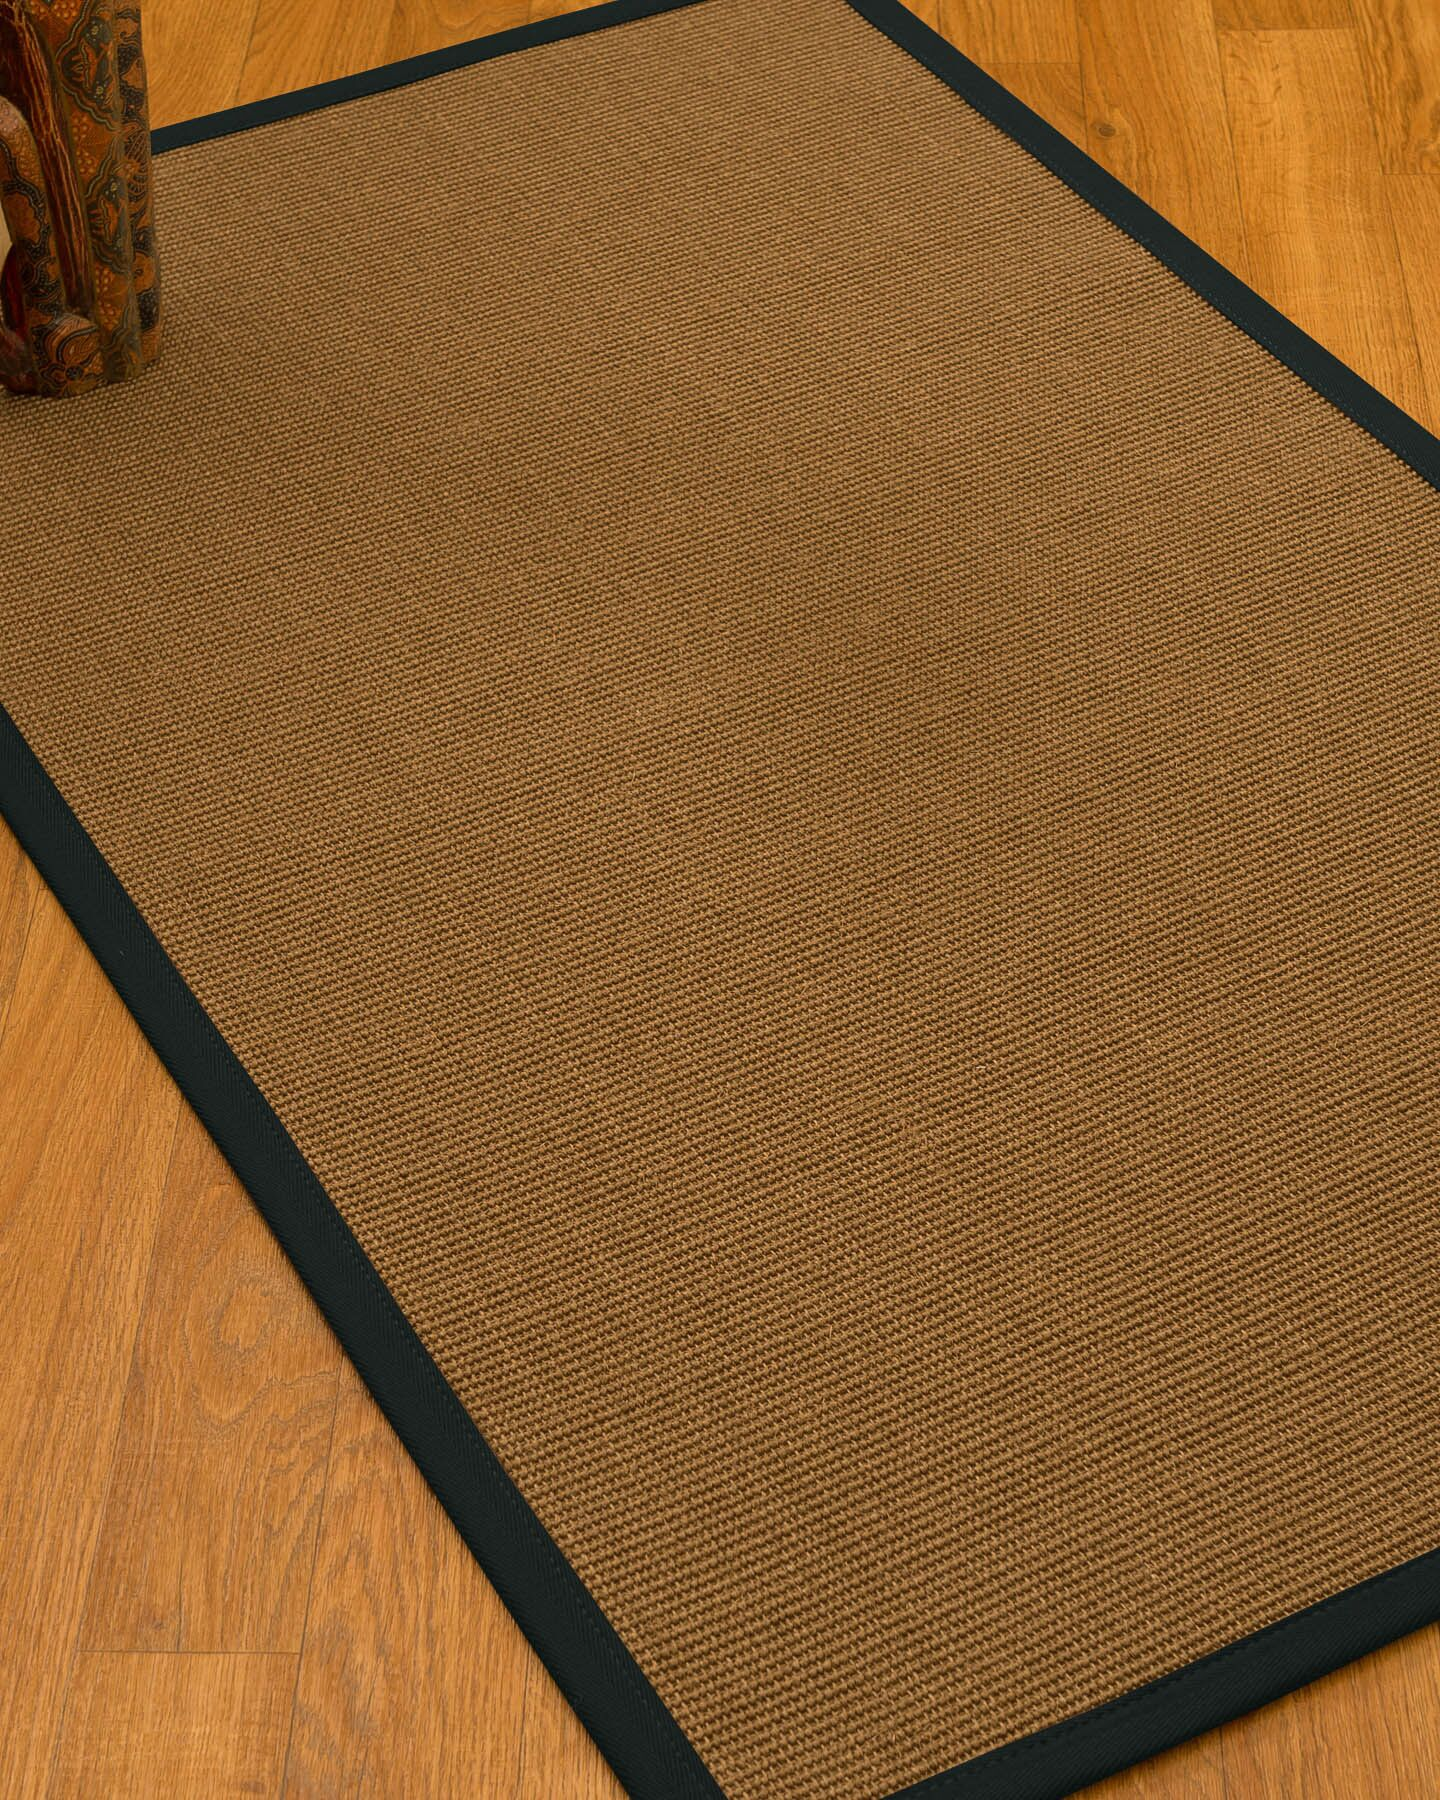 Huntwood Border Hand-Woven Brown/Onyx Area Rug Rug Size: Rectangle 6' x 9', Rug Pad Included: Yes